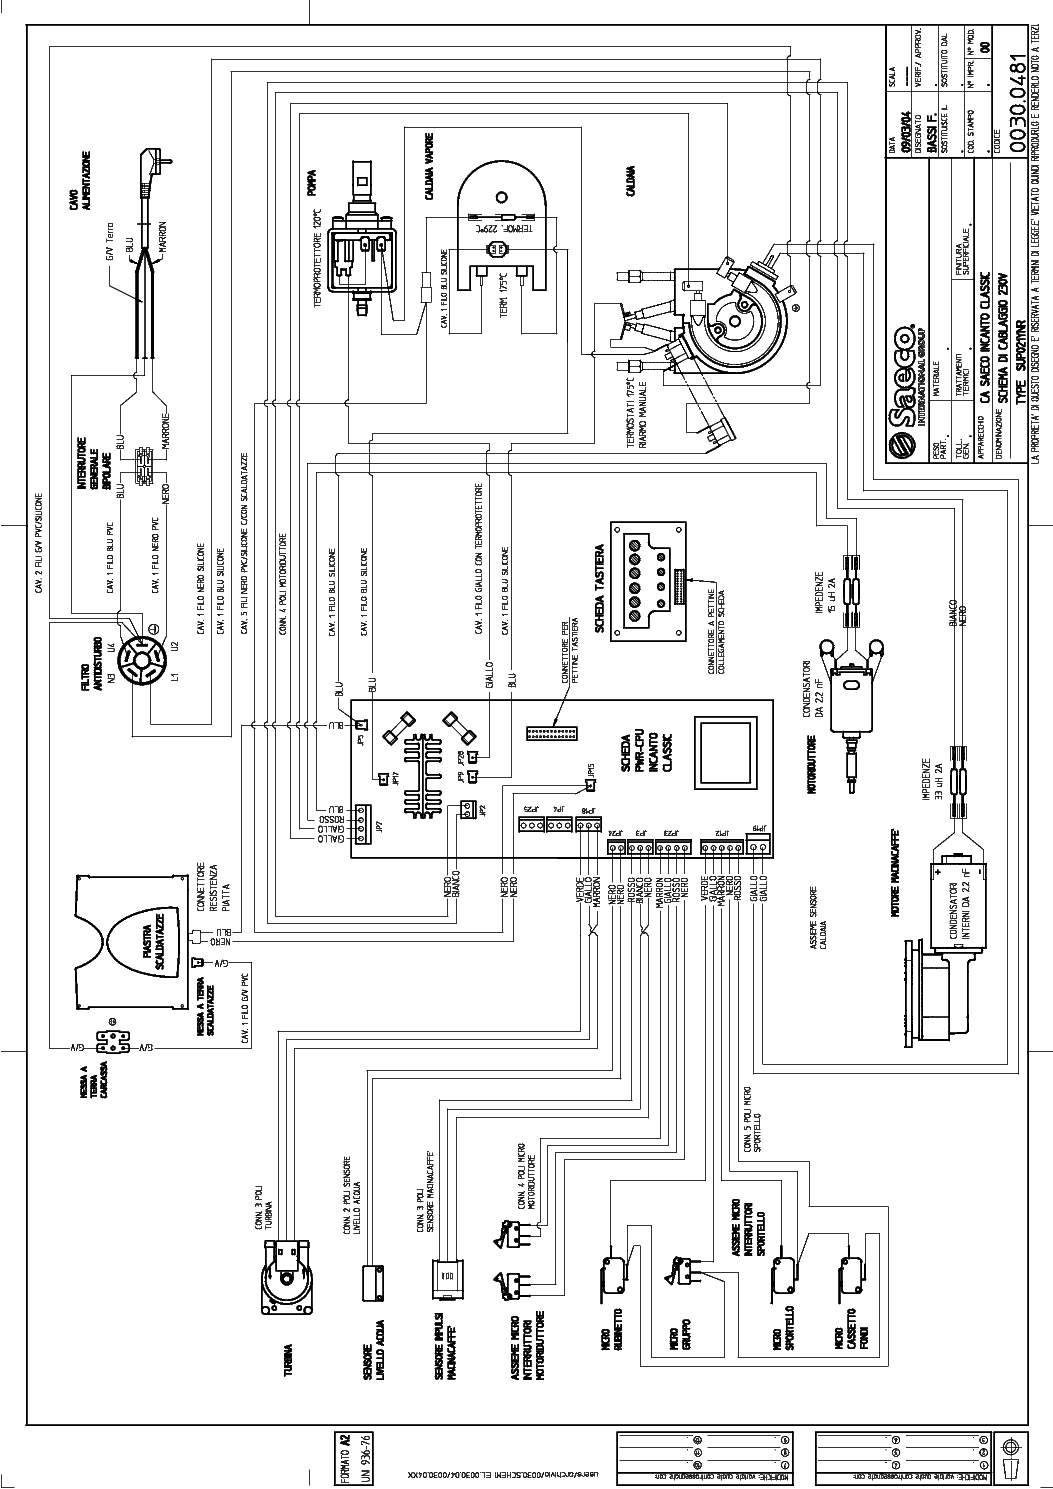 Saeco Sup 021ynr Sch Service Manual Download Schematics